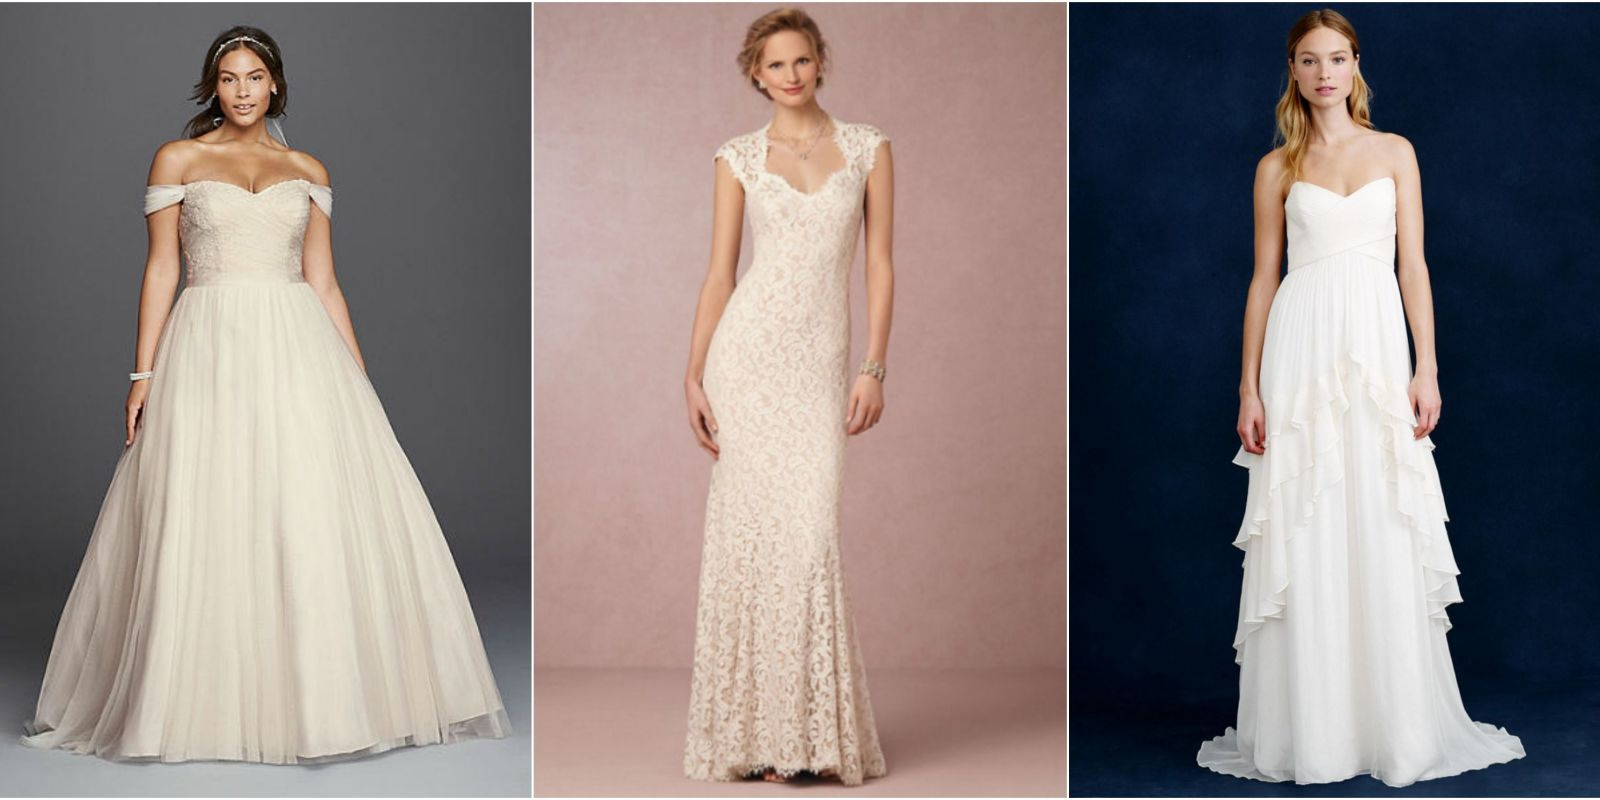 Discount Wedding Gowns: 20 Cheap Wedding Dresses Under $1,000 That Look Expensive